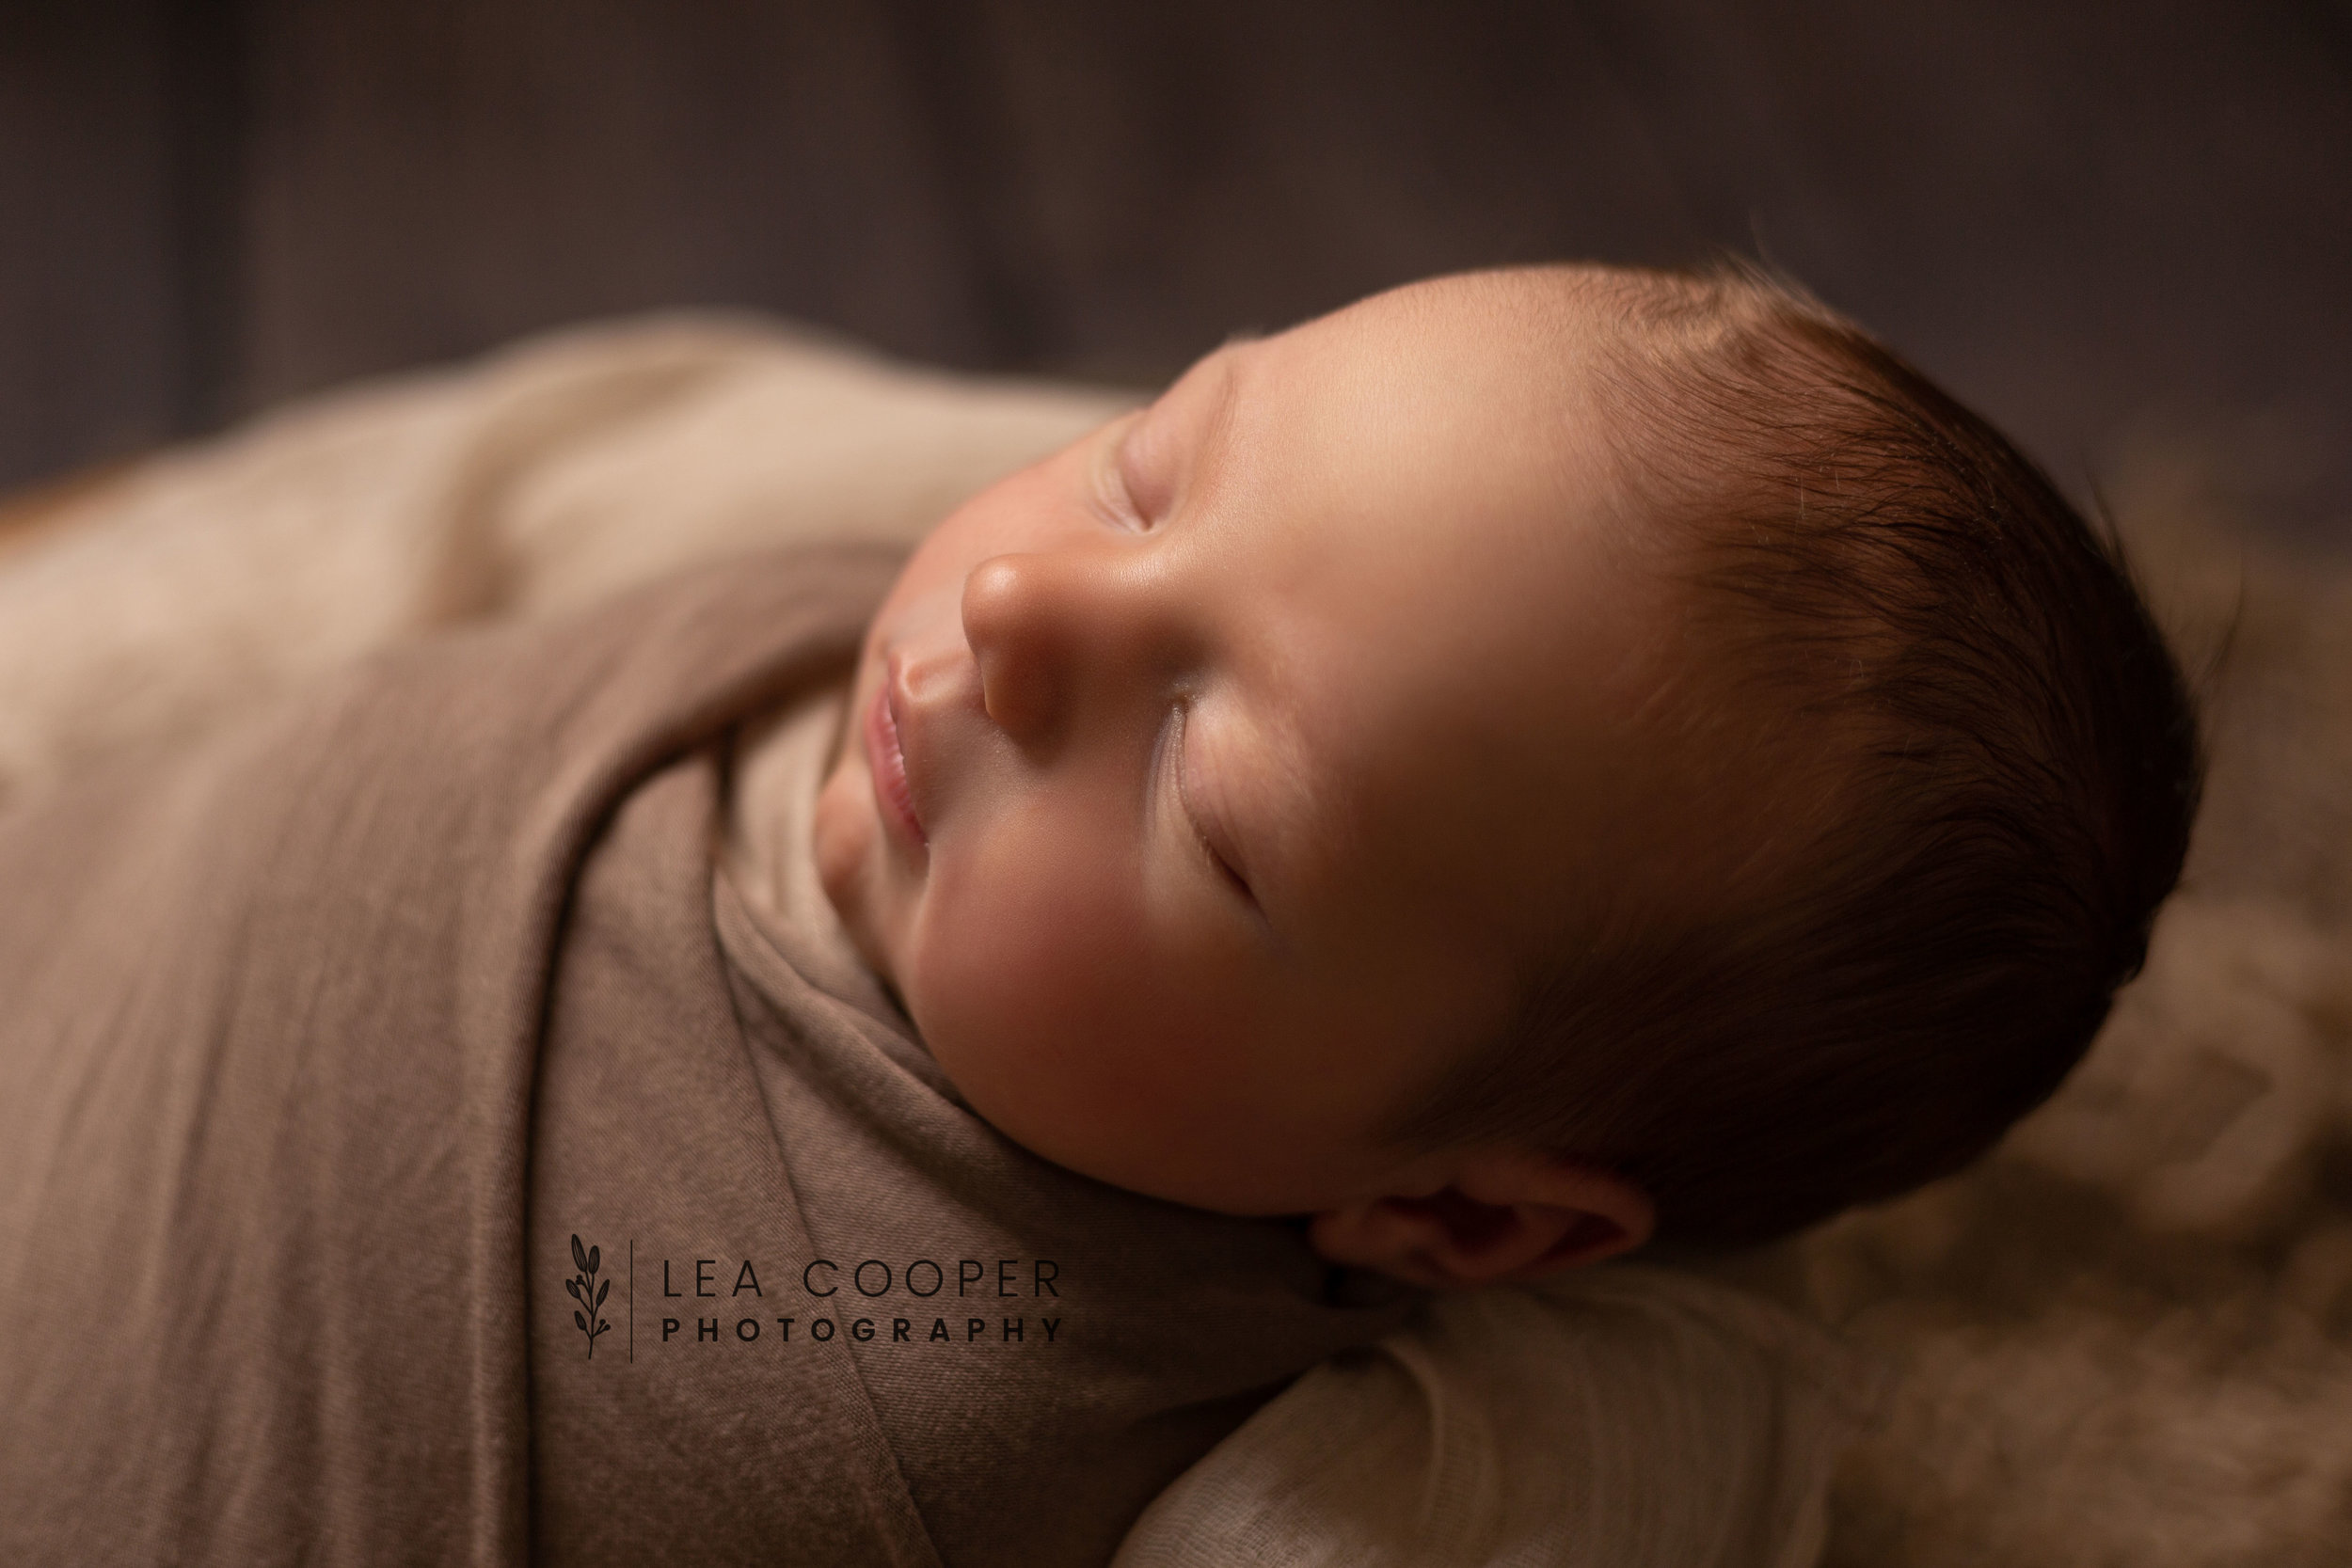 newborn-photography-willenhall-lea-cooper-photography-wolverhampton-baby-photographer-birmingham-west-midlands-uk-oliver--7.jpg